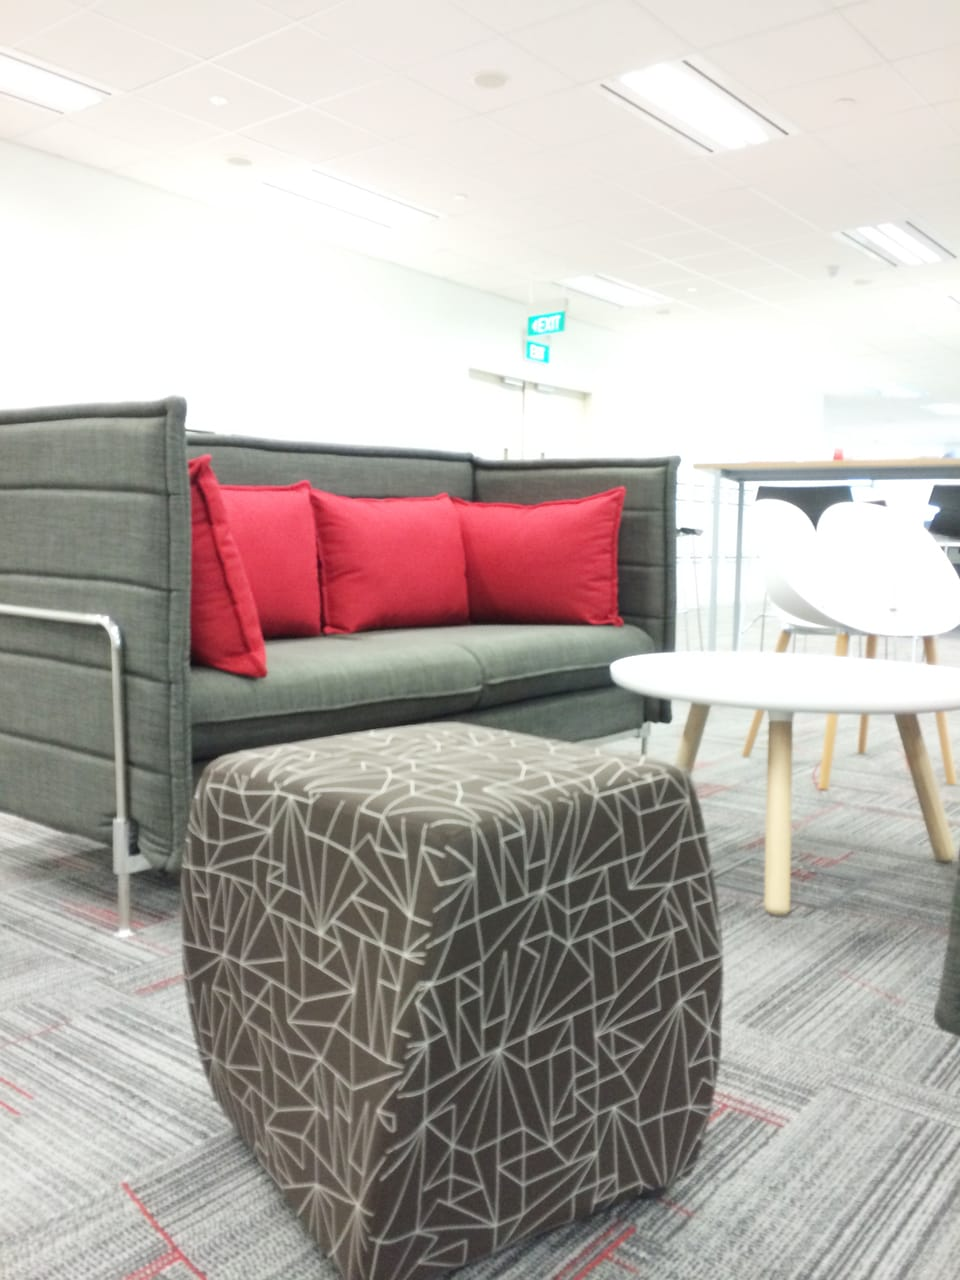 Office - Fusionopolis Innovis | Products Seen: Enclosed 3 Seater Sofa (Midback), Cuba Stool, Lucy Coffee Table – Big & Macaroni Chair]<br />